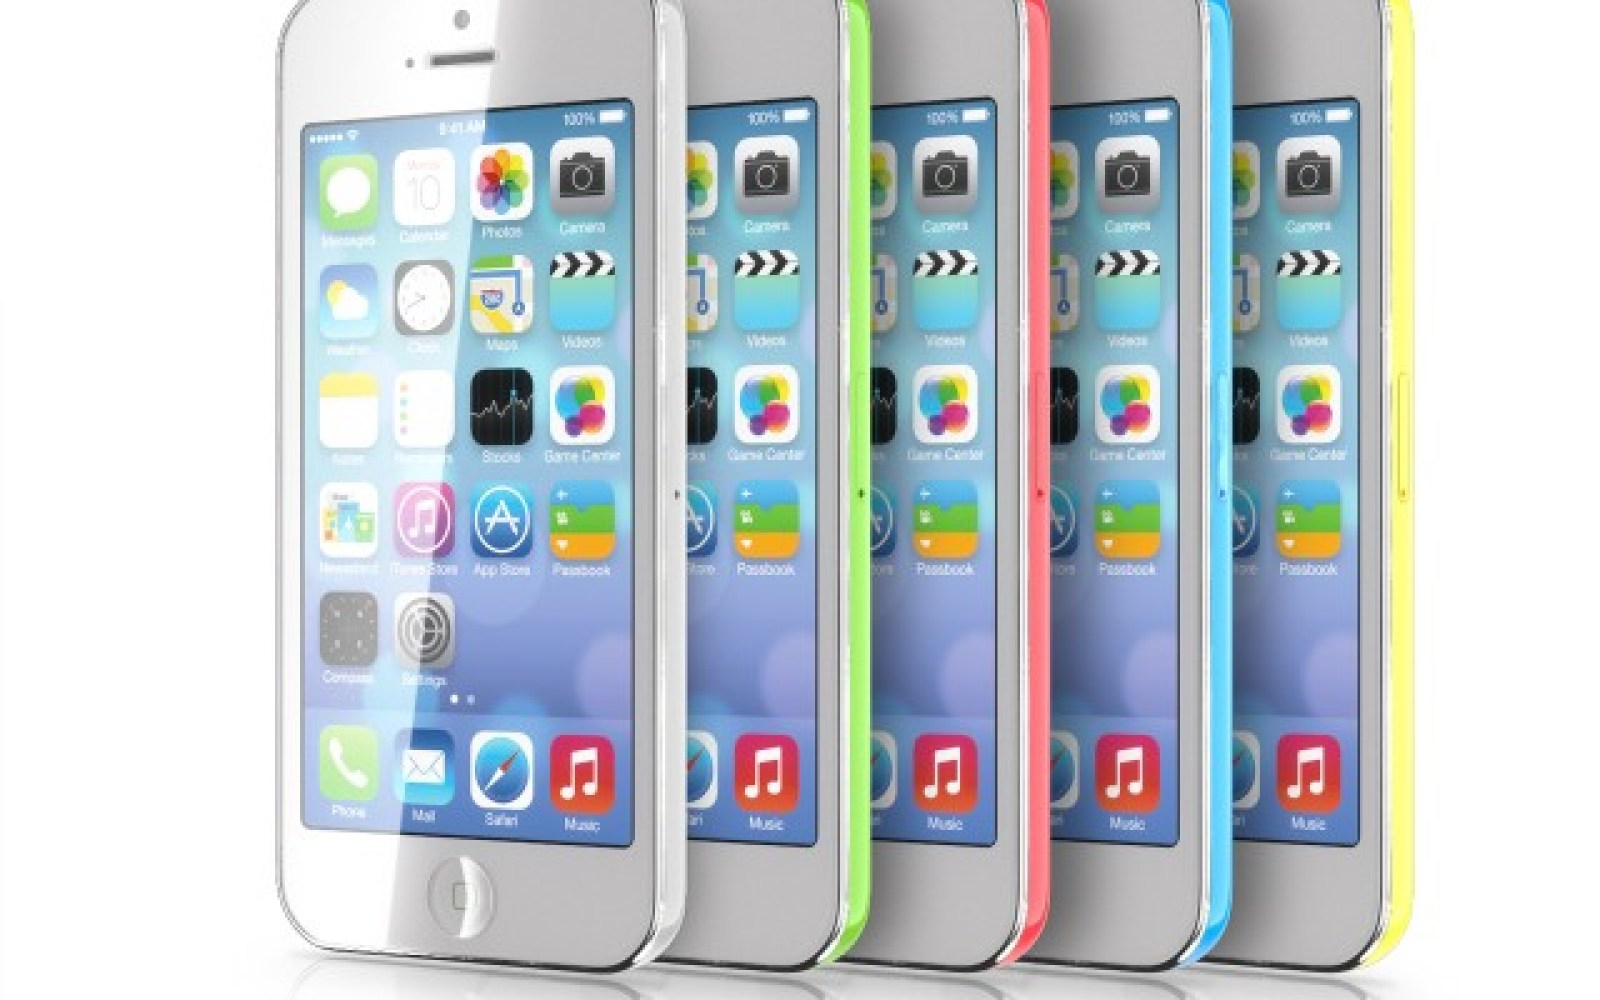 More leaked photos & concept of purported plastic iPhone shells in colors hit the web